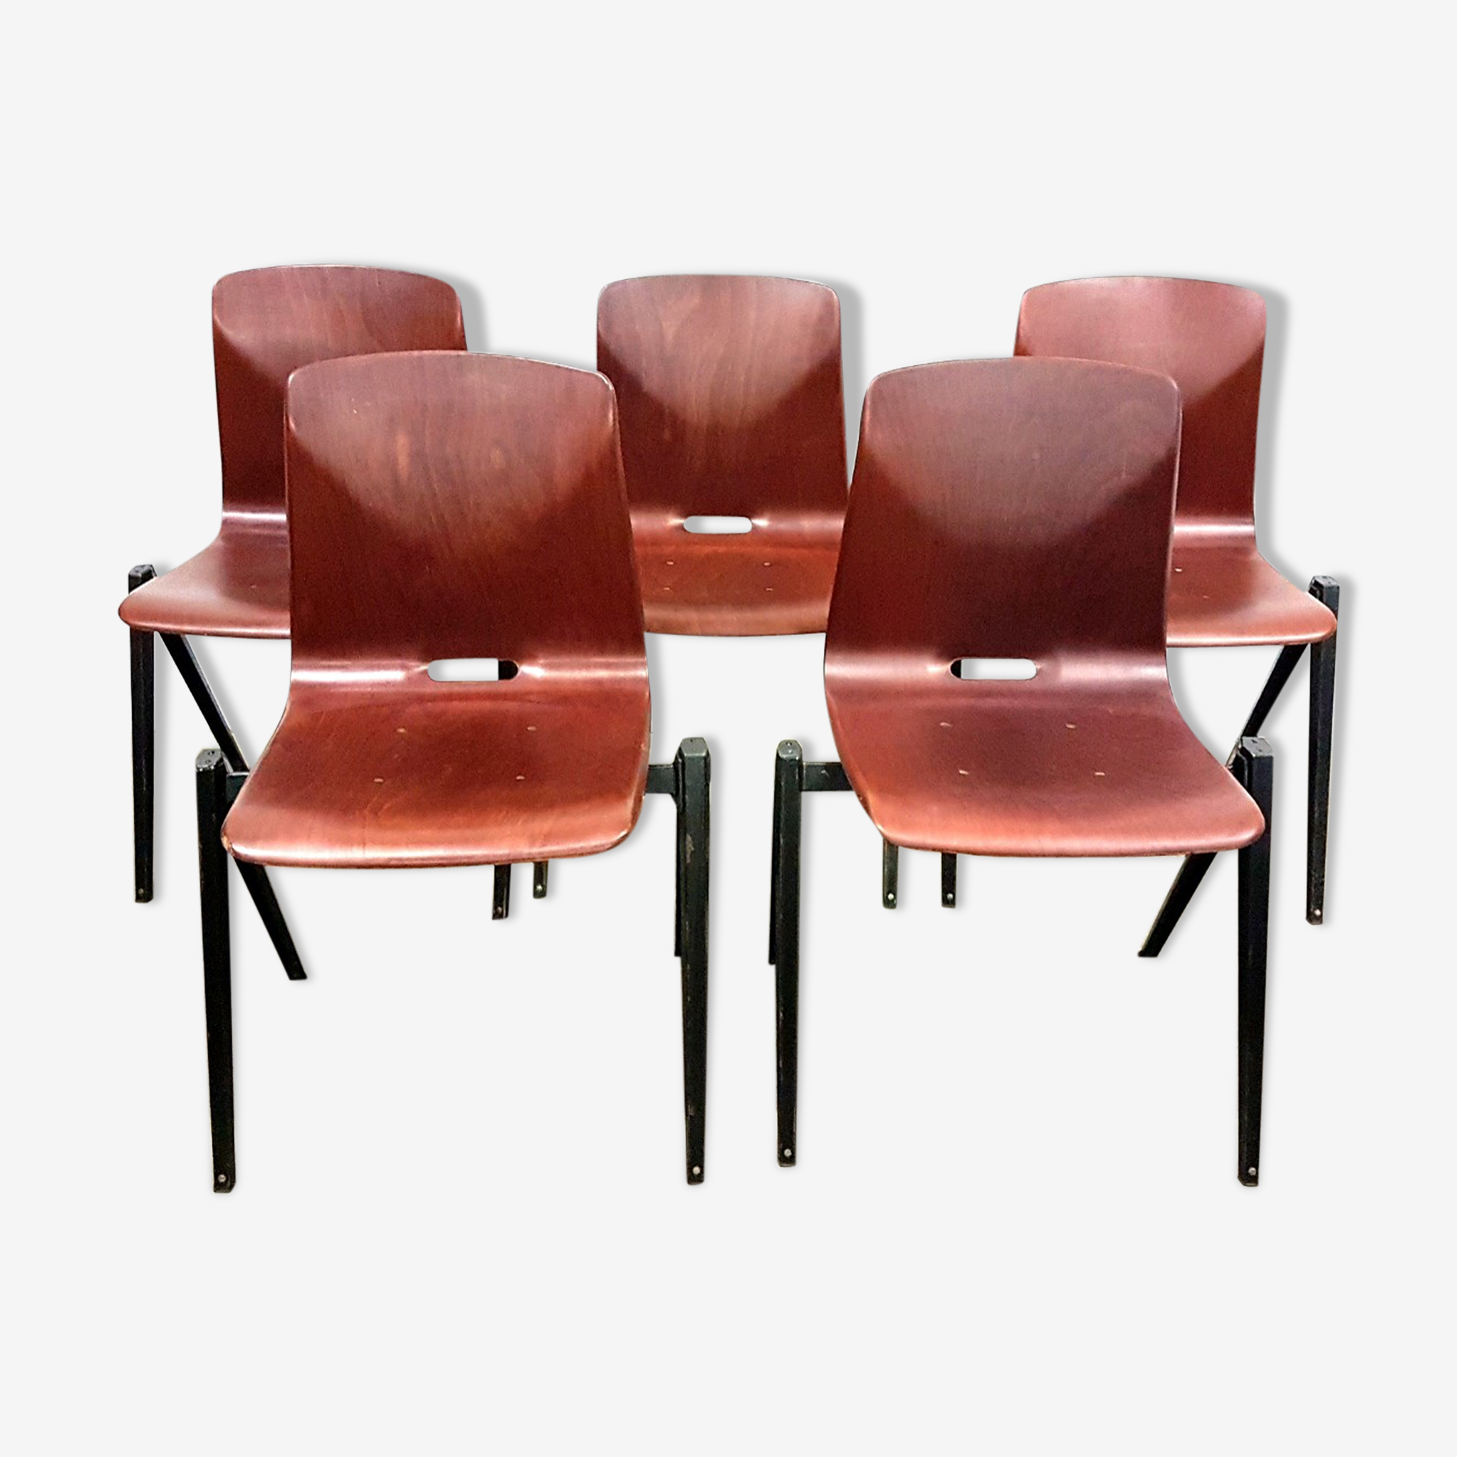 Set of 5 s22 Galvanitas stacking chairs